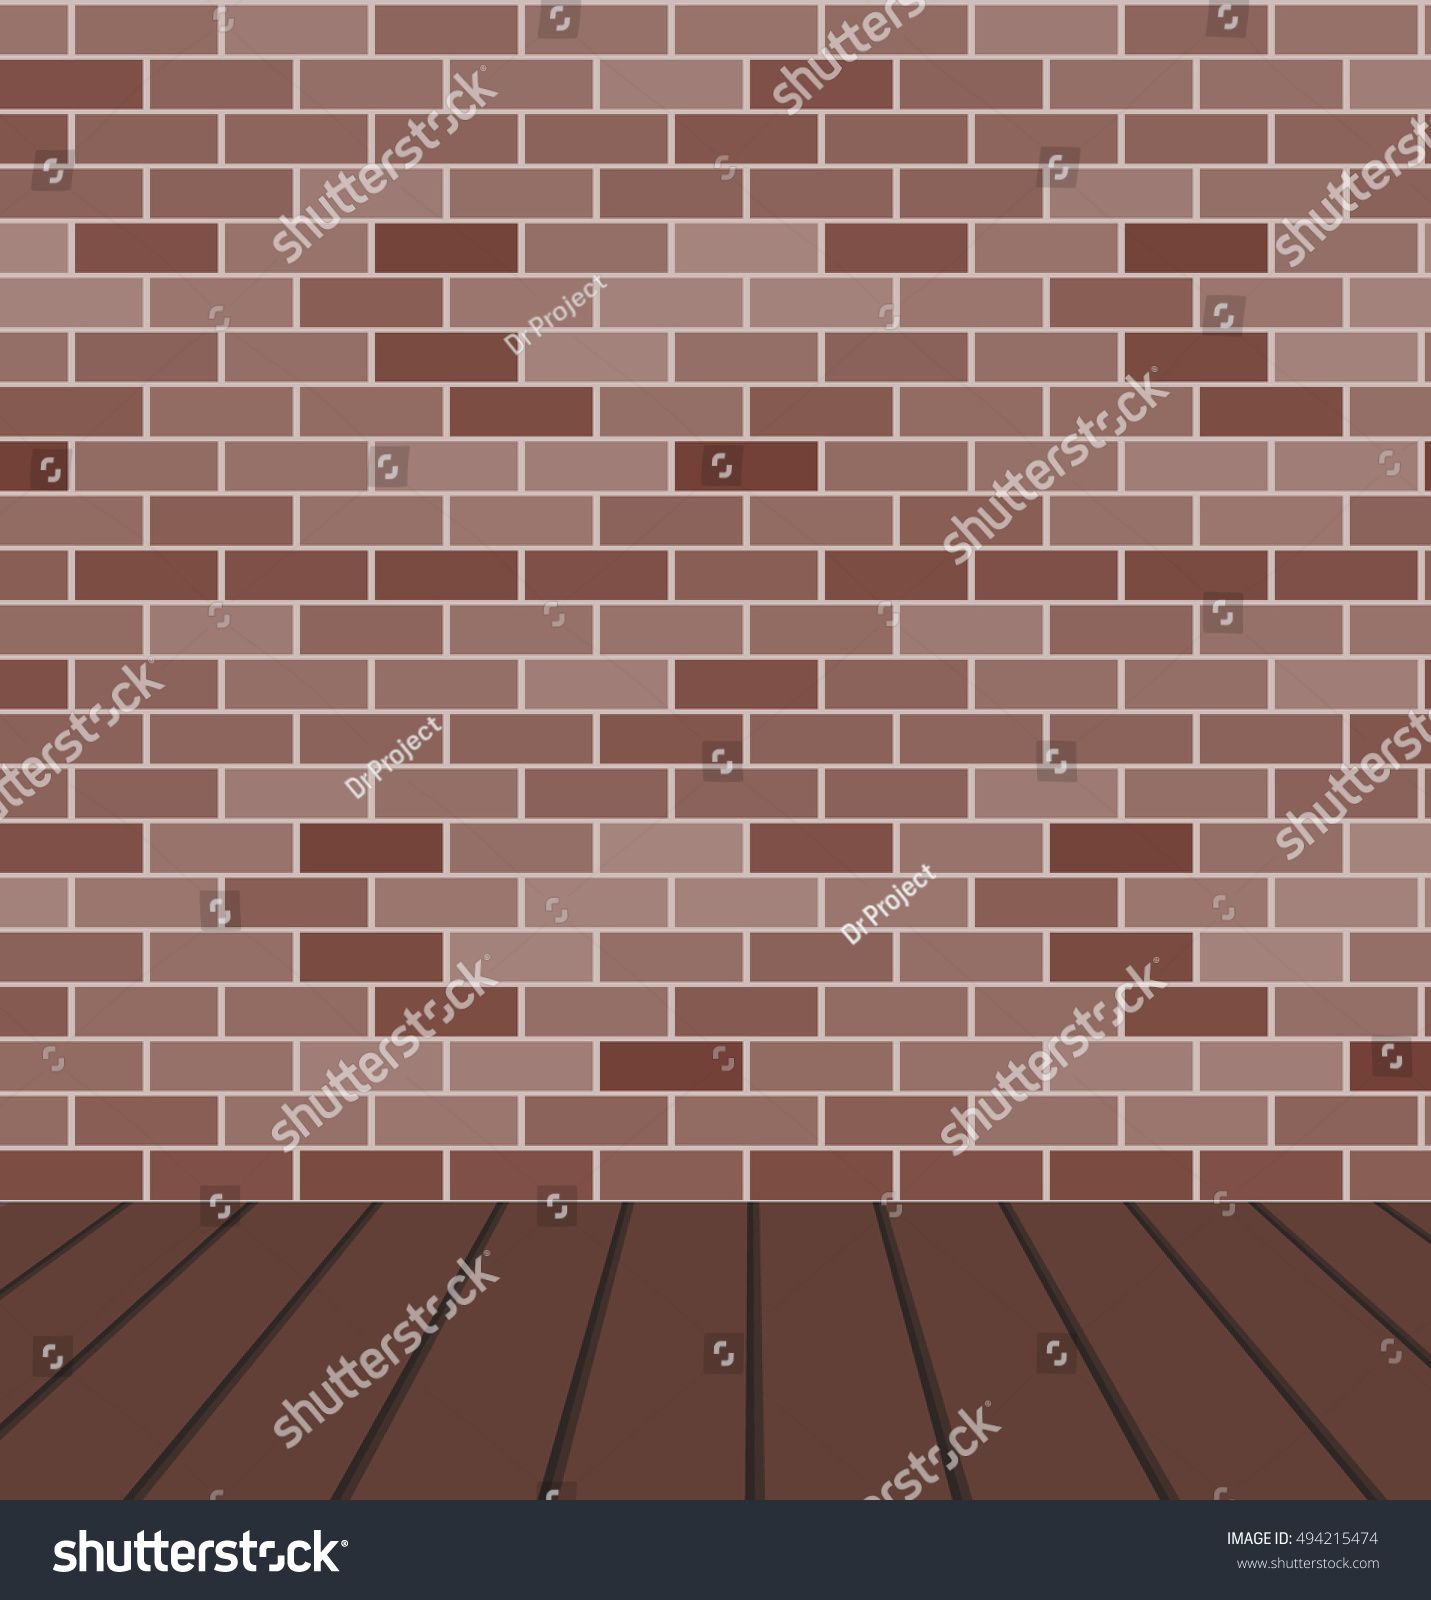 empty room with brown brick wall and wood floor vector grunge background